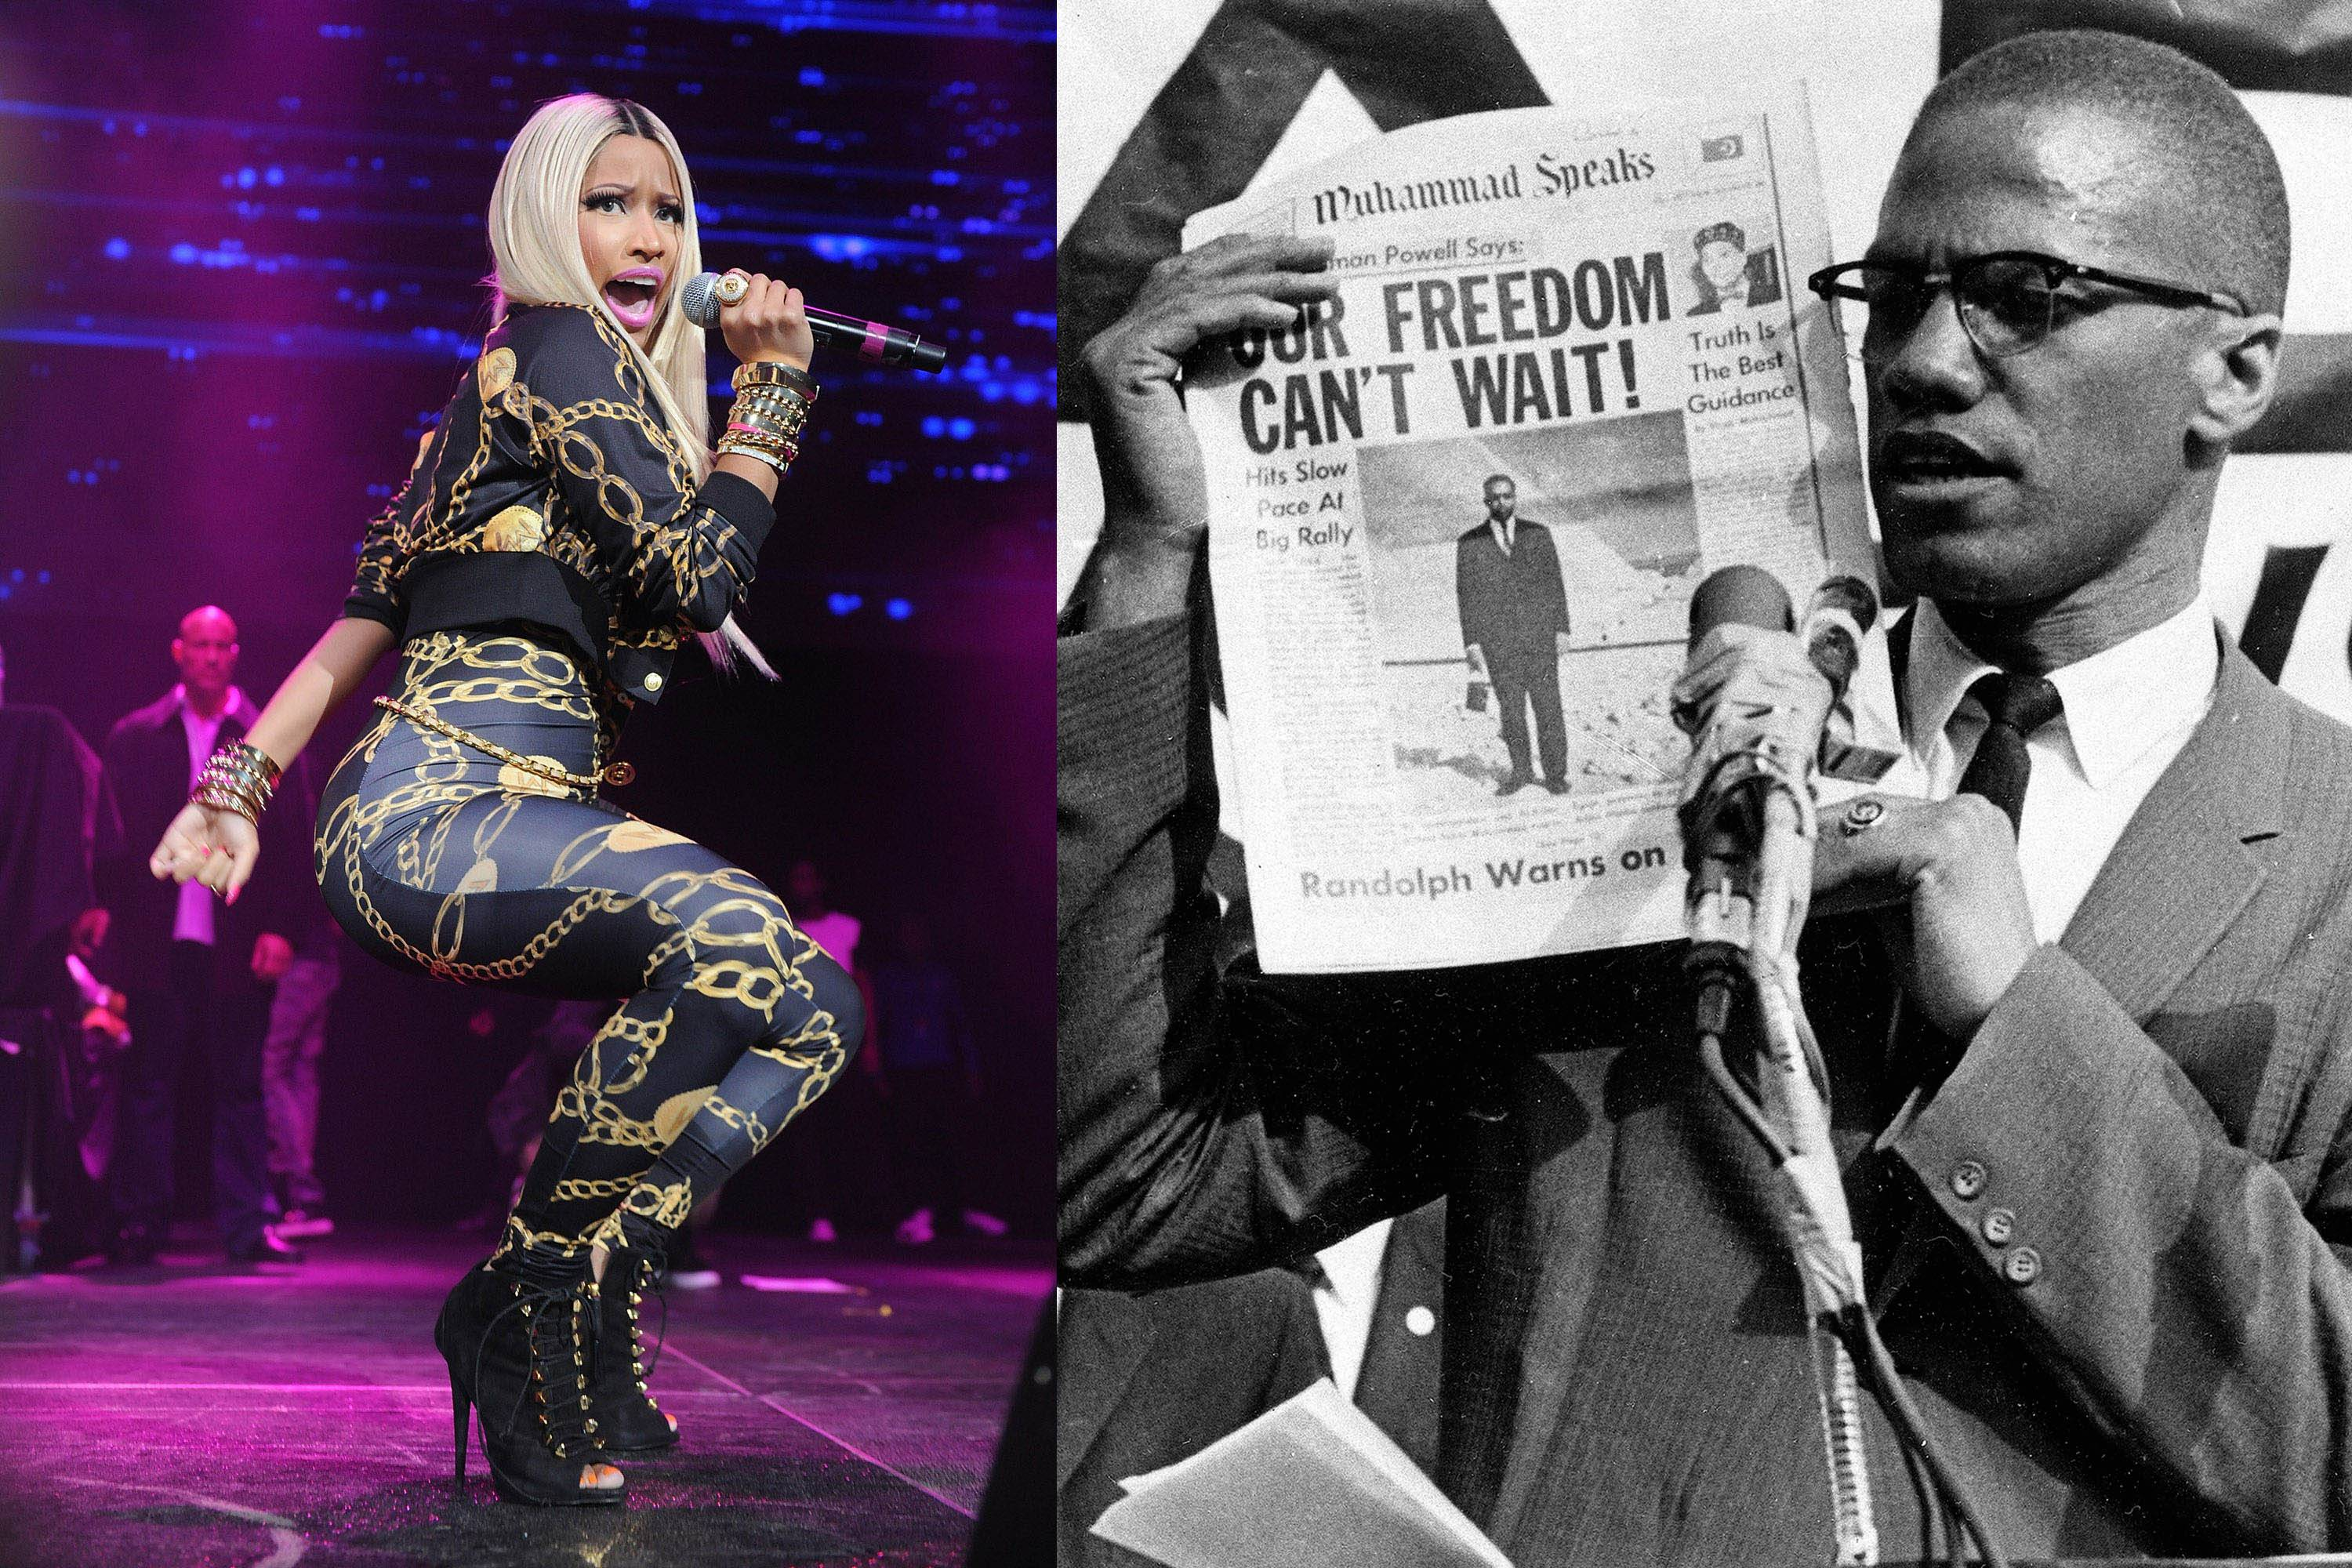 In this combination of 2013 and 1963 file photos, hip-hop artist Nicki Minaj performs, and Malcolm X, civil rights activist and black Muslim leader, holds a newspaper as he speaks at a rally in New York. On Thursday, Feb. 13, Minaj apologized after provoking widespread outrage with an Instagram and Web post featuring one of black history's most poignant images: Malcolm X peering out the window of his home, rifle in hand, trying to defend his wife and children from firebombs while under surveillance by federal agents. Superimposed on the photo: the title of Minaj's new song, which denigrates certain black men and repeats the N-word 42 times.